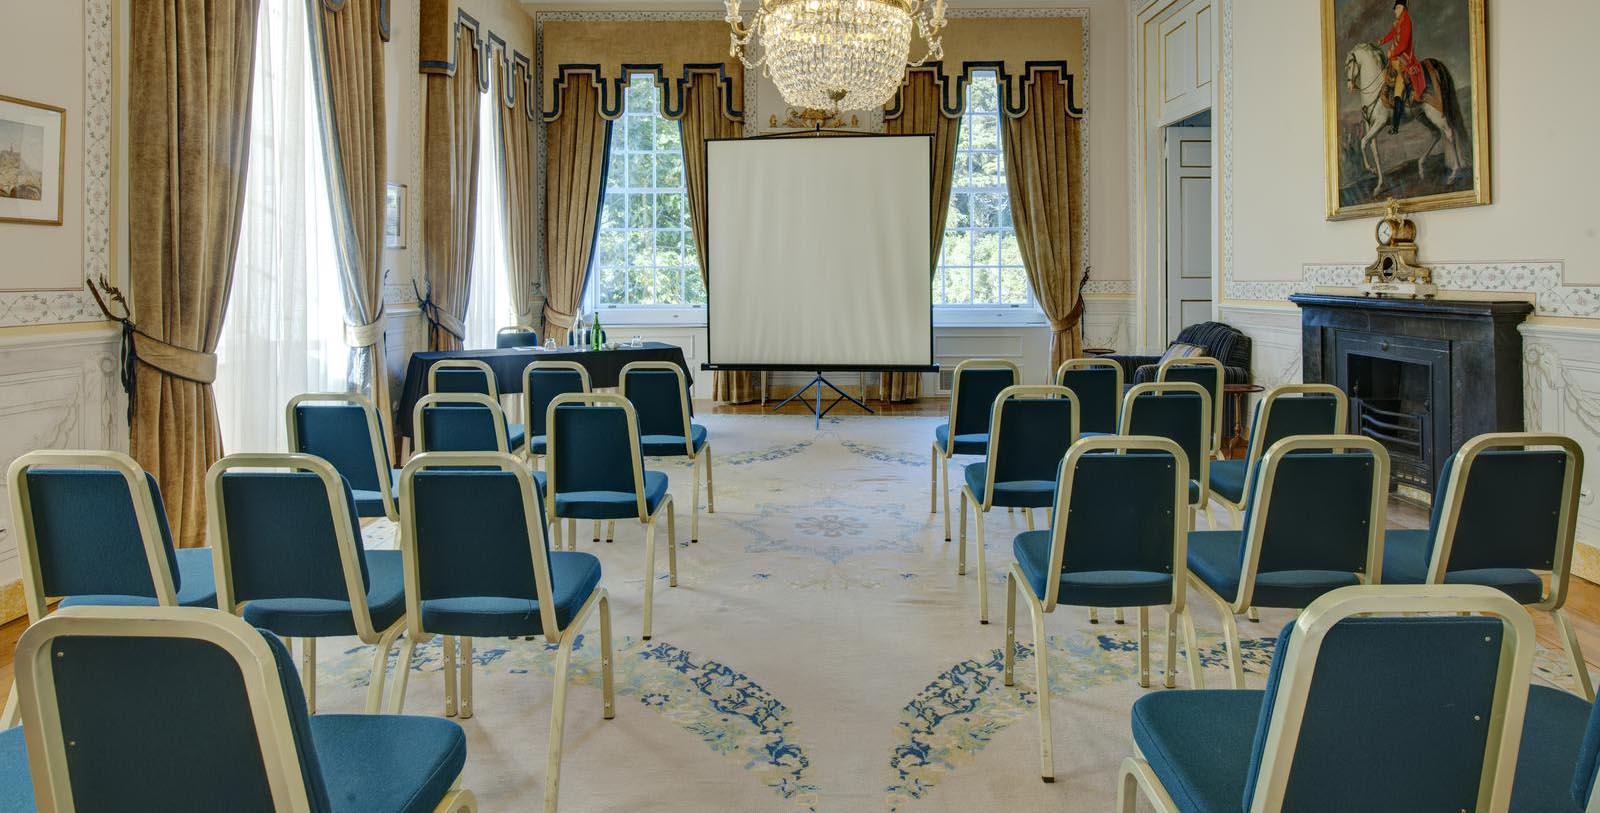 Image of Meeting Room at Tivoli Palacio de Seteais, 1787, Member of Historic Hotels Worldwide, in Sintra, Portugal, Experience